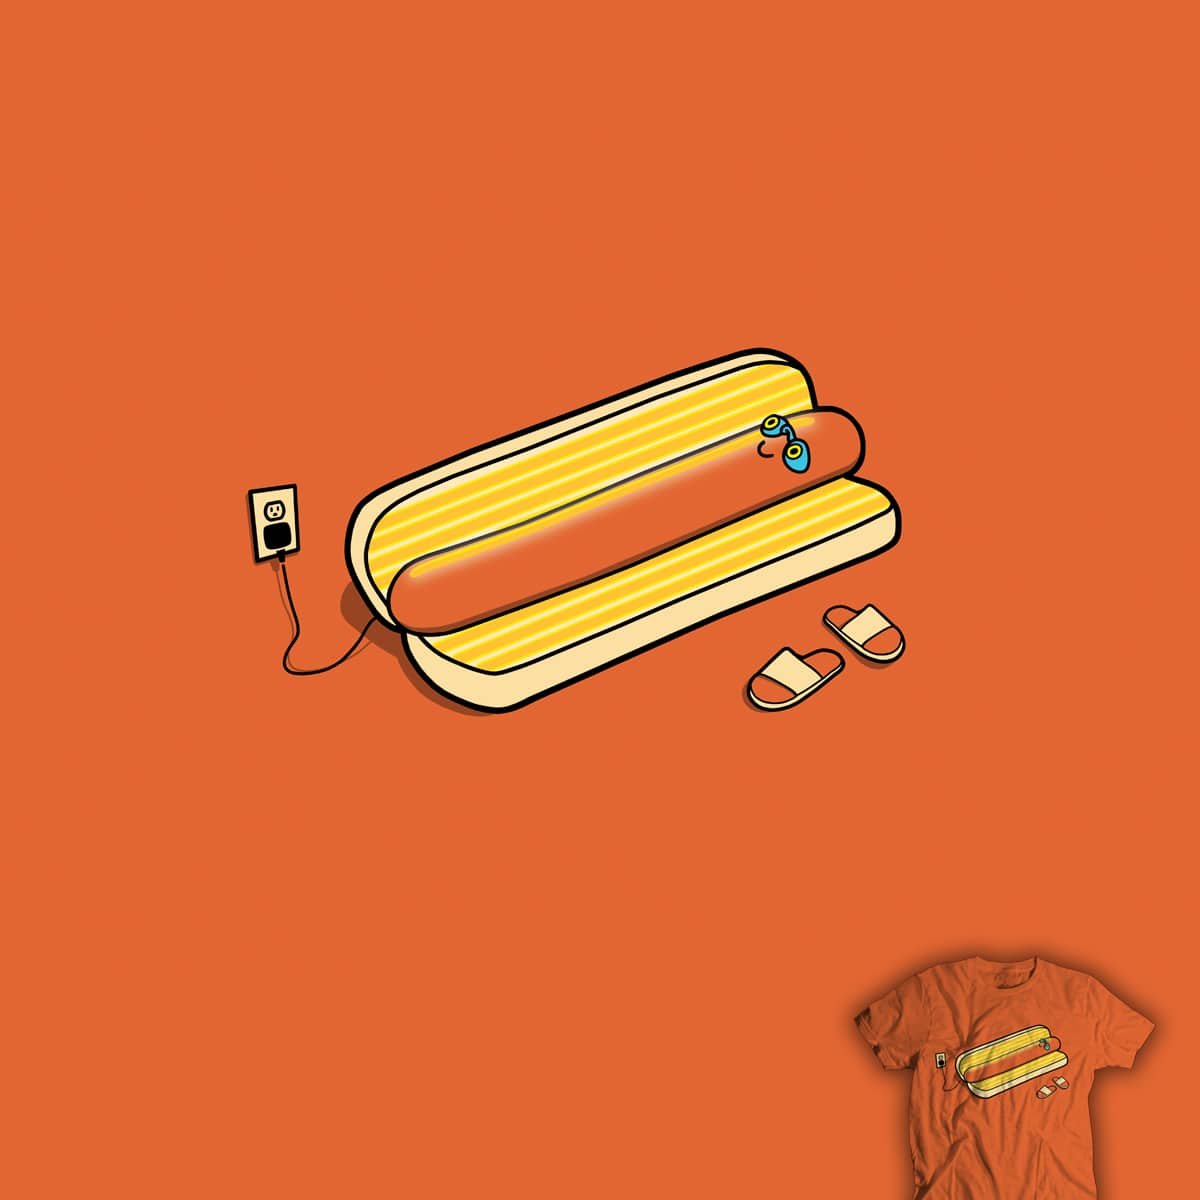 Cooking Up A Tan by davidfromdallas and DustinTaylor on Threadless